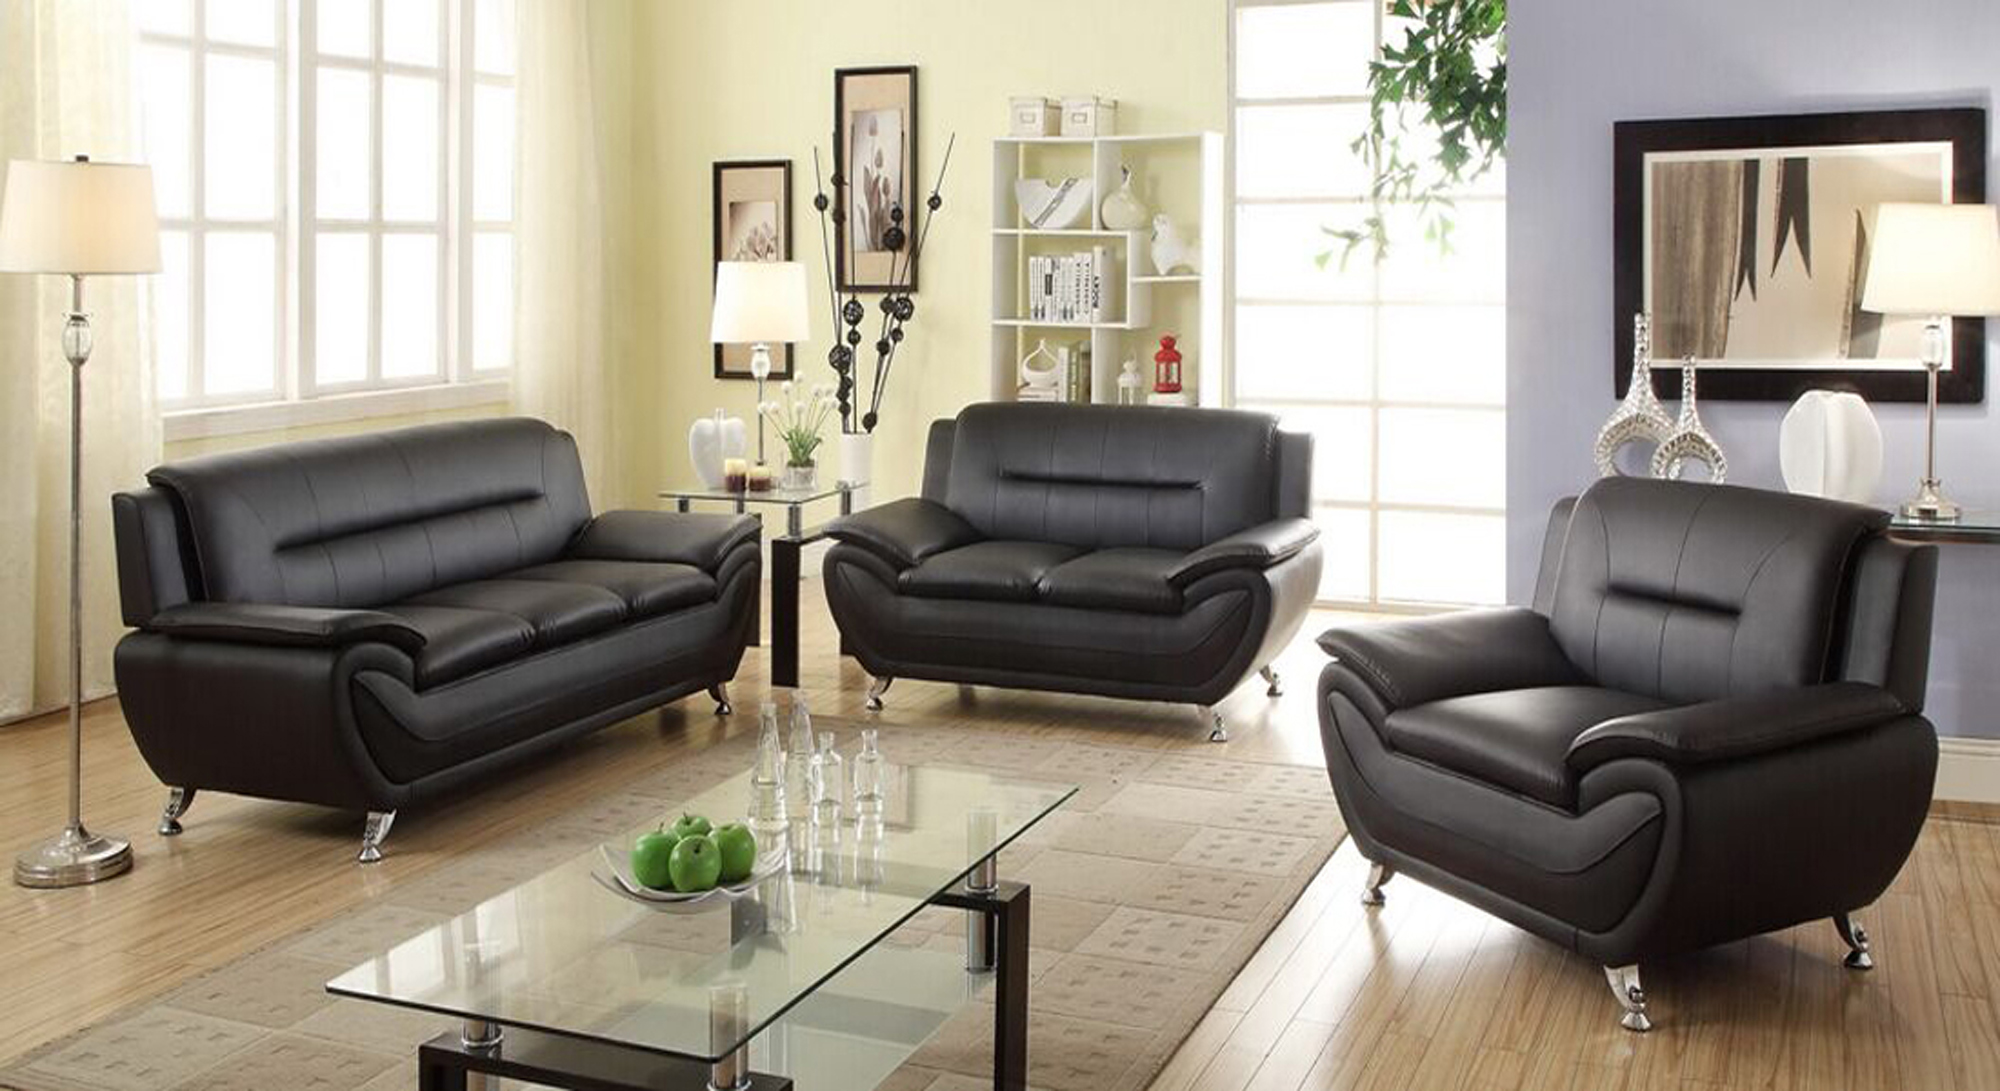 Leather Living Room Furnitures Norton 3 Pc Black Faux Leather Modern Living Room Sofa Set